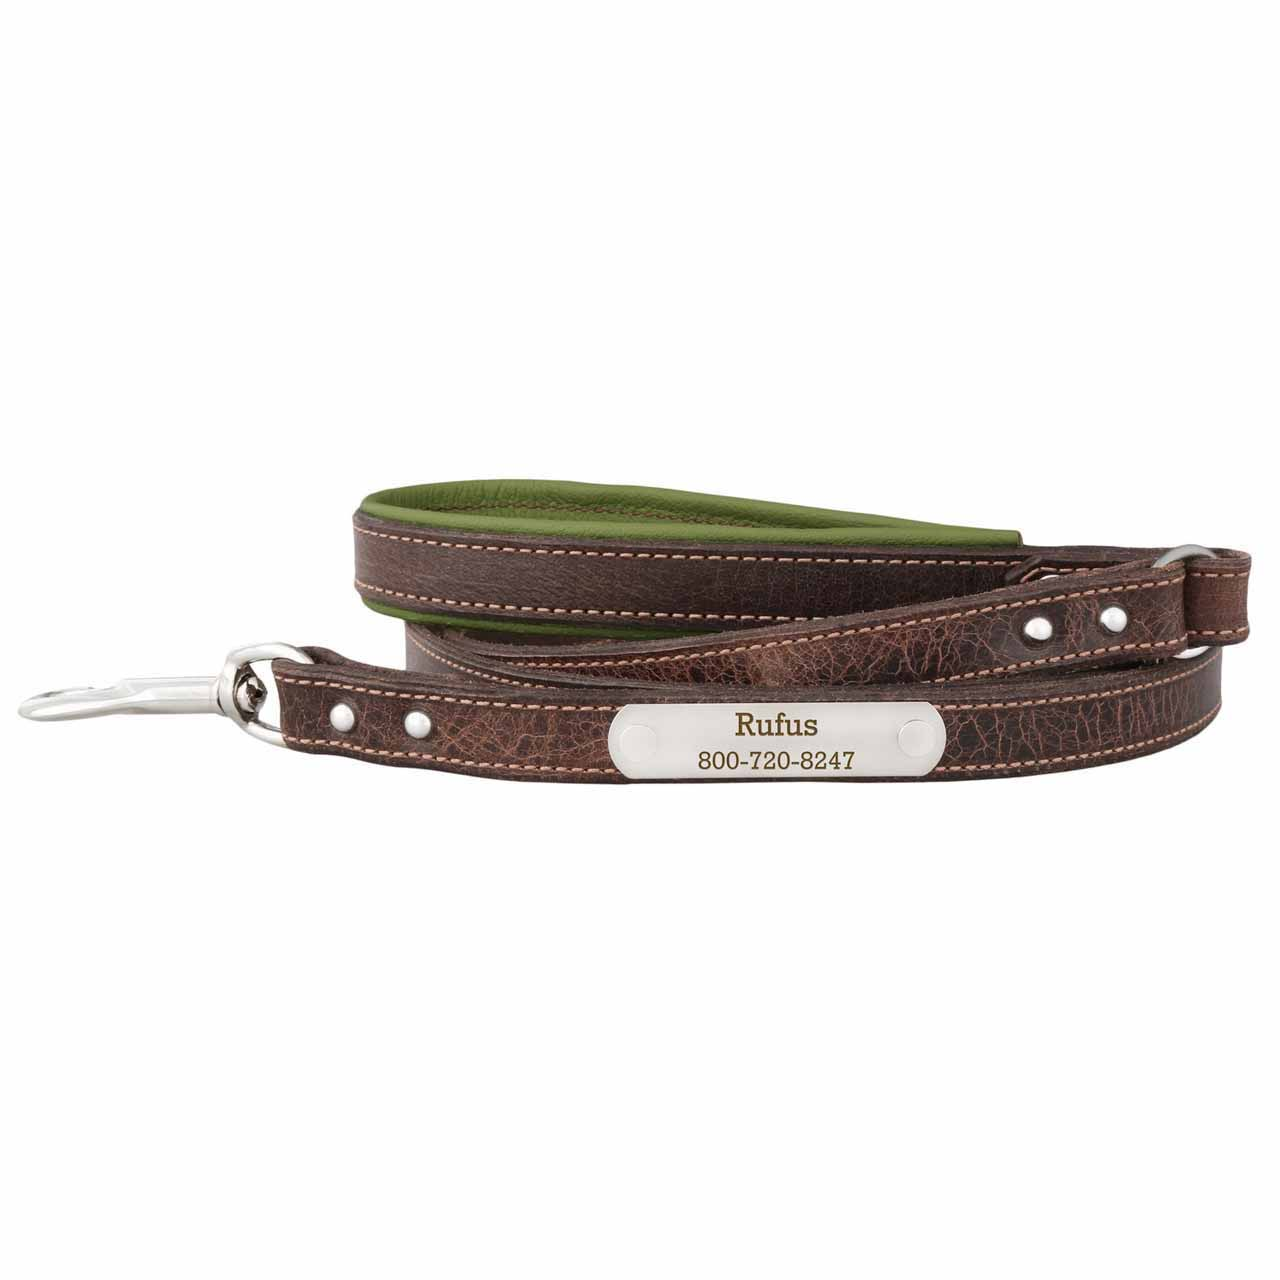 Orion Artisan Leather Personalized Leash Avocado Green